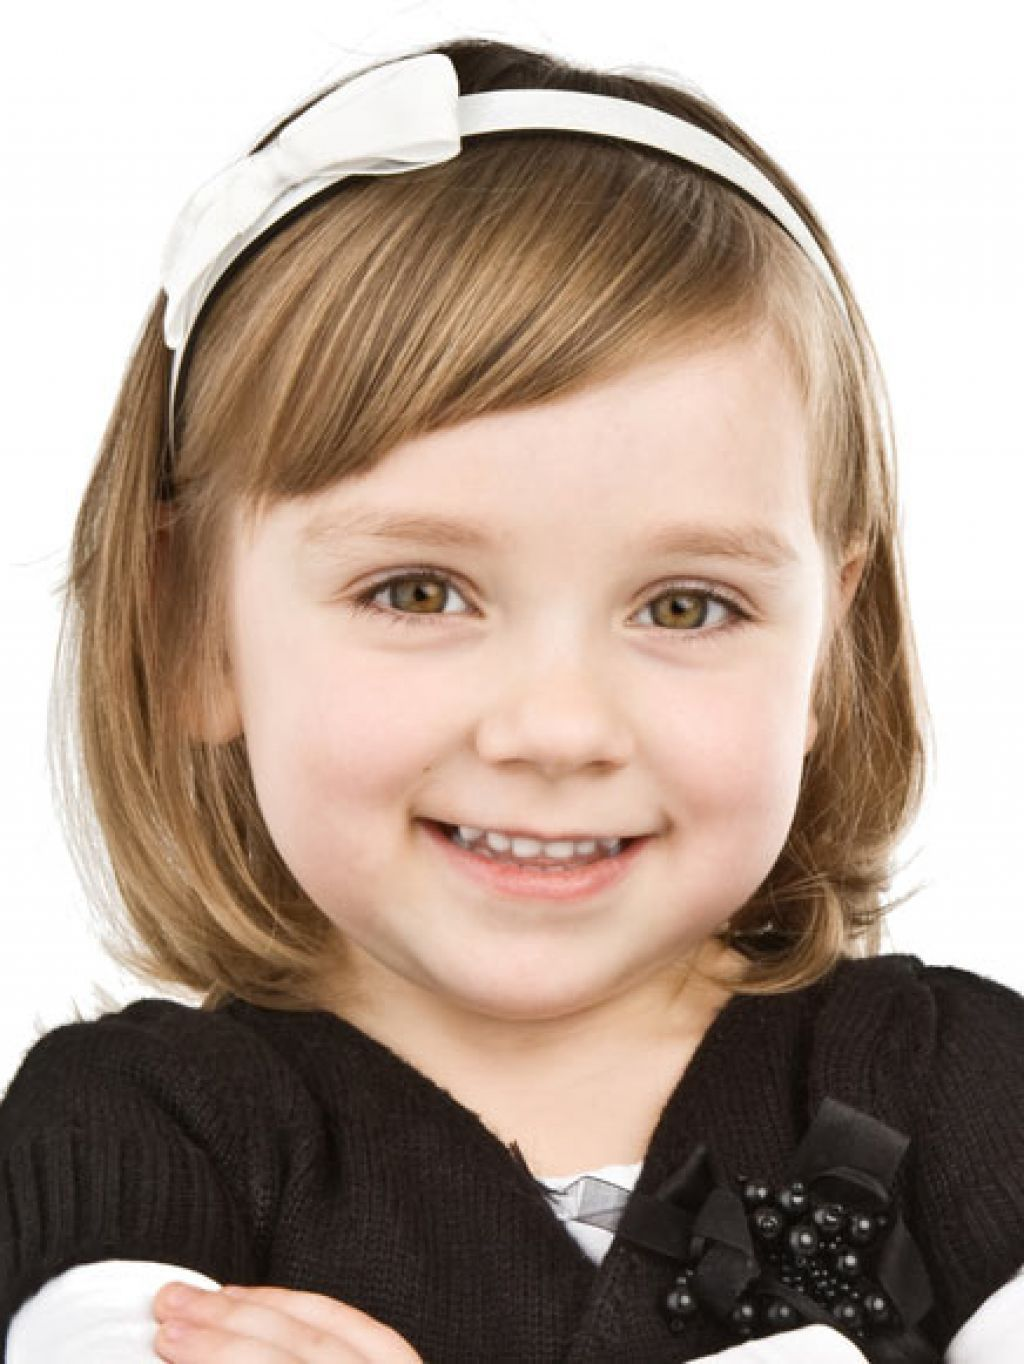 Pin On Kids Hair Style 2019